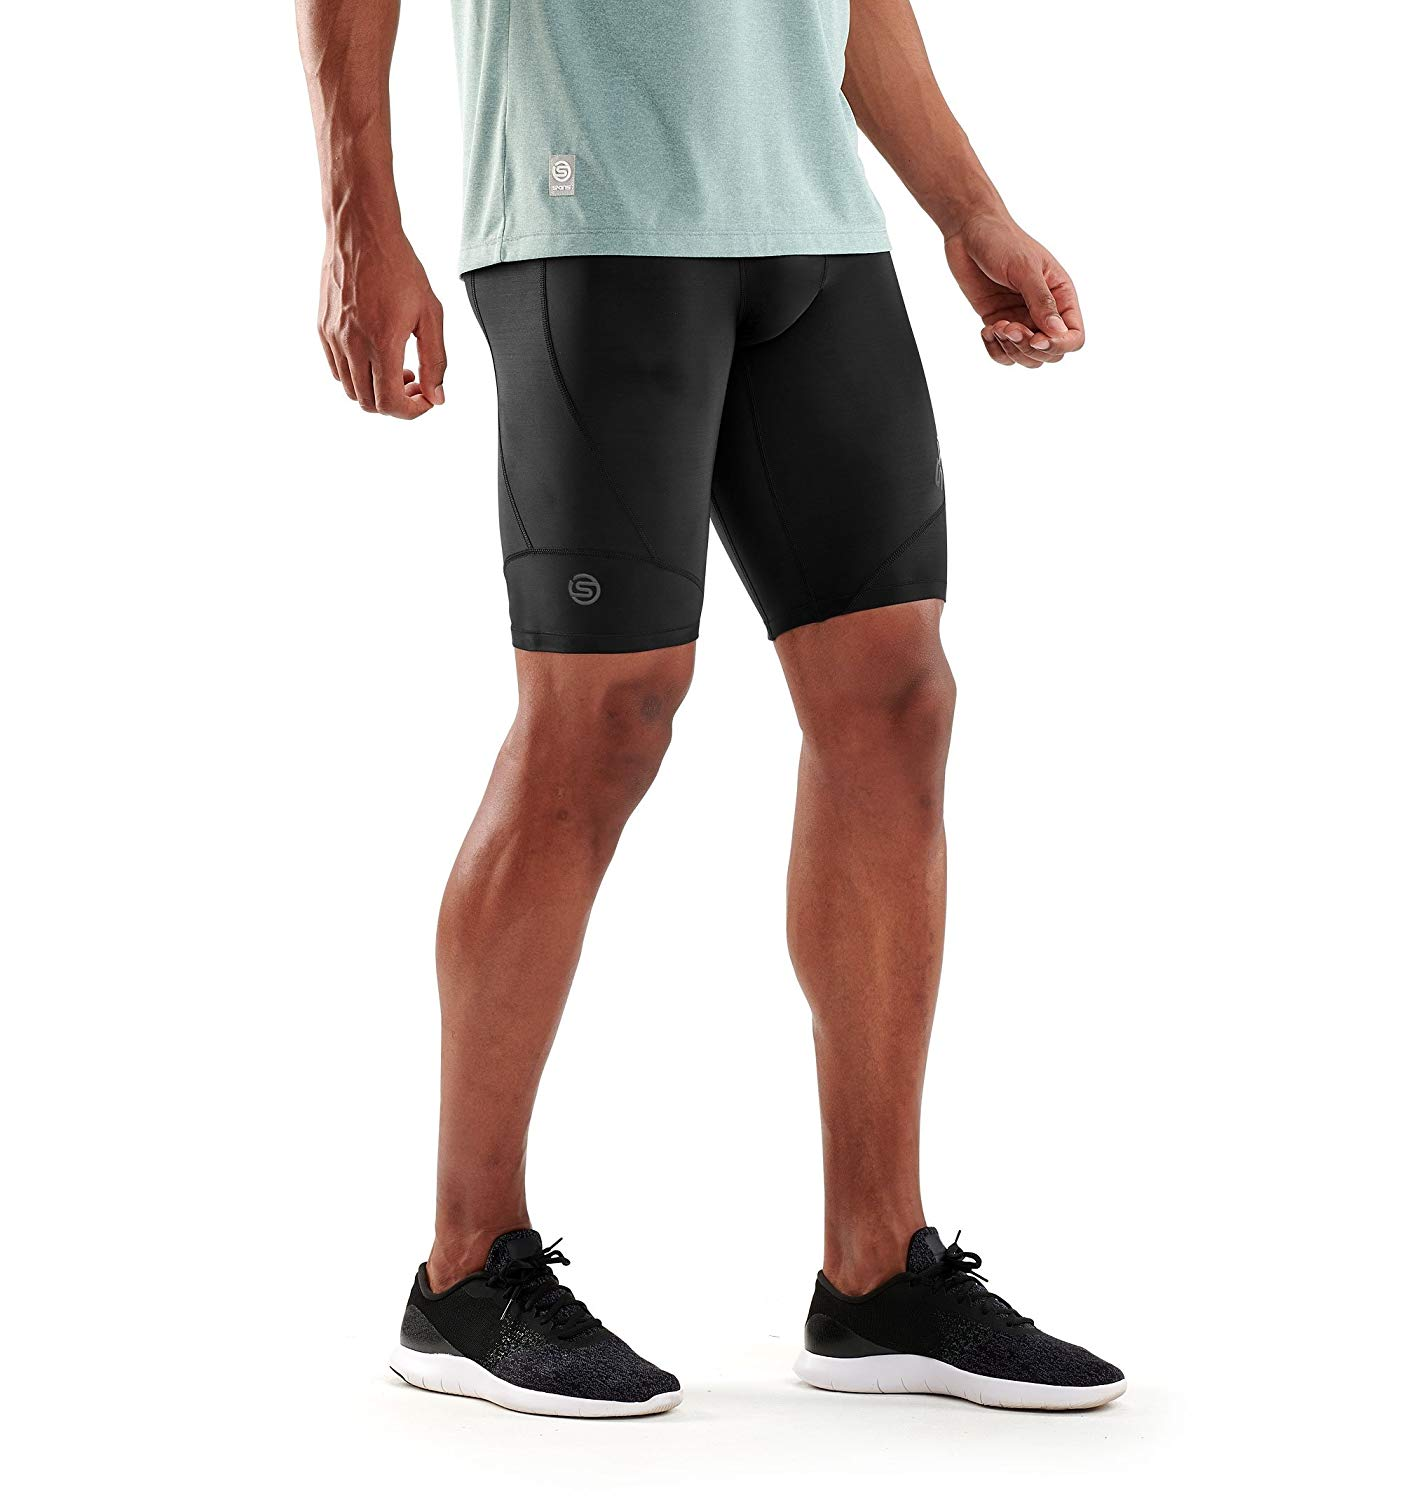 Clothing & Accessories Activewear Skins A200 Half Tights Compression Running Pants Fitness Running Sports Shorts Up-To-Date Styling